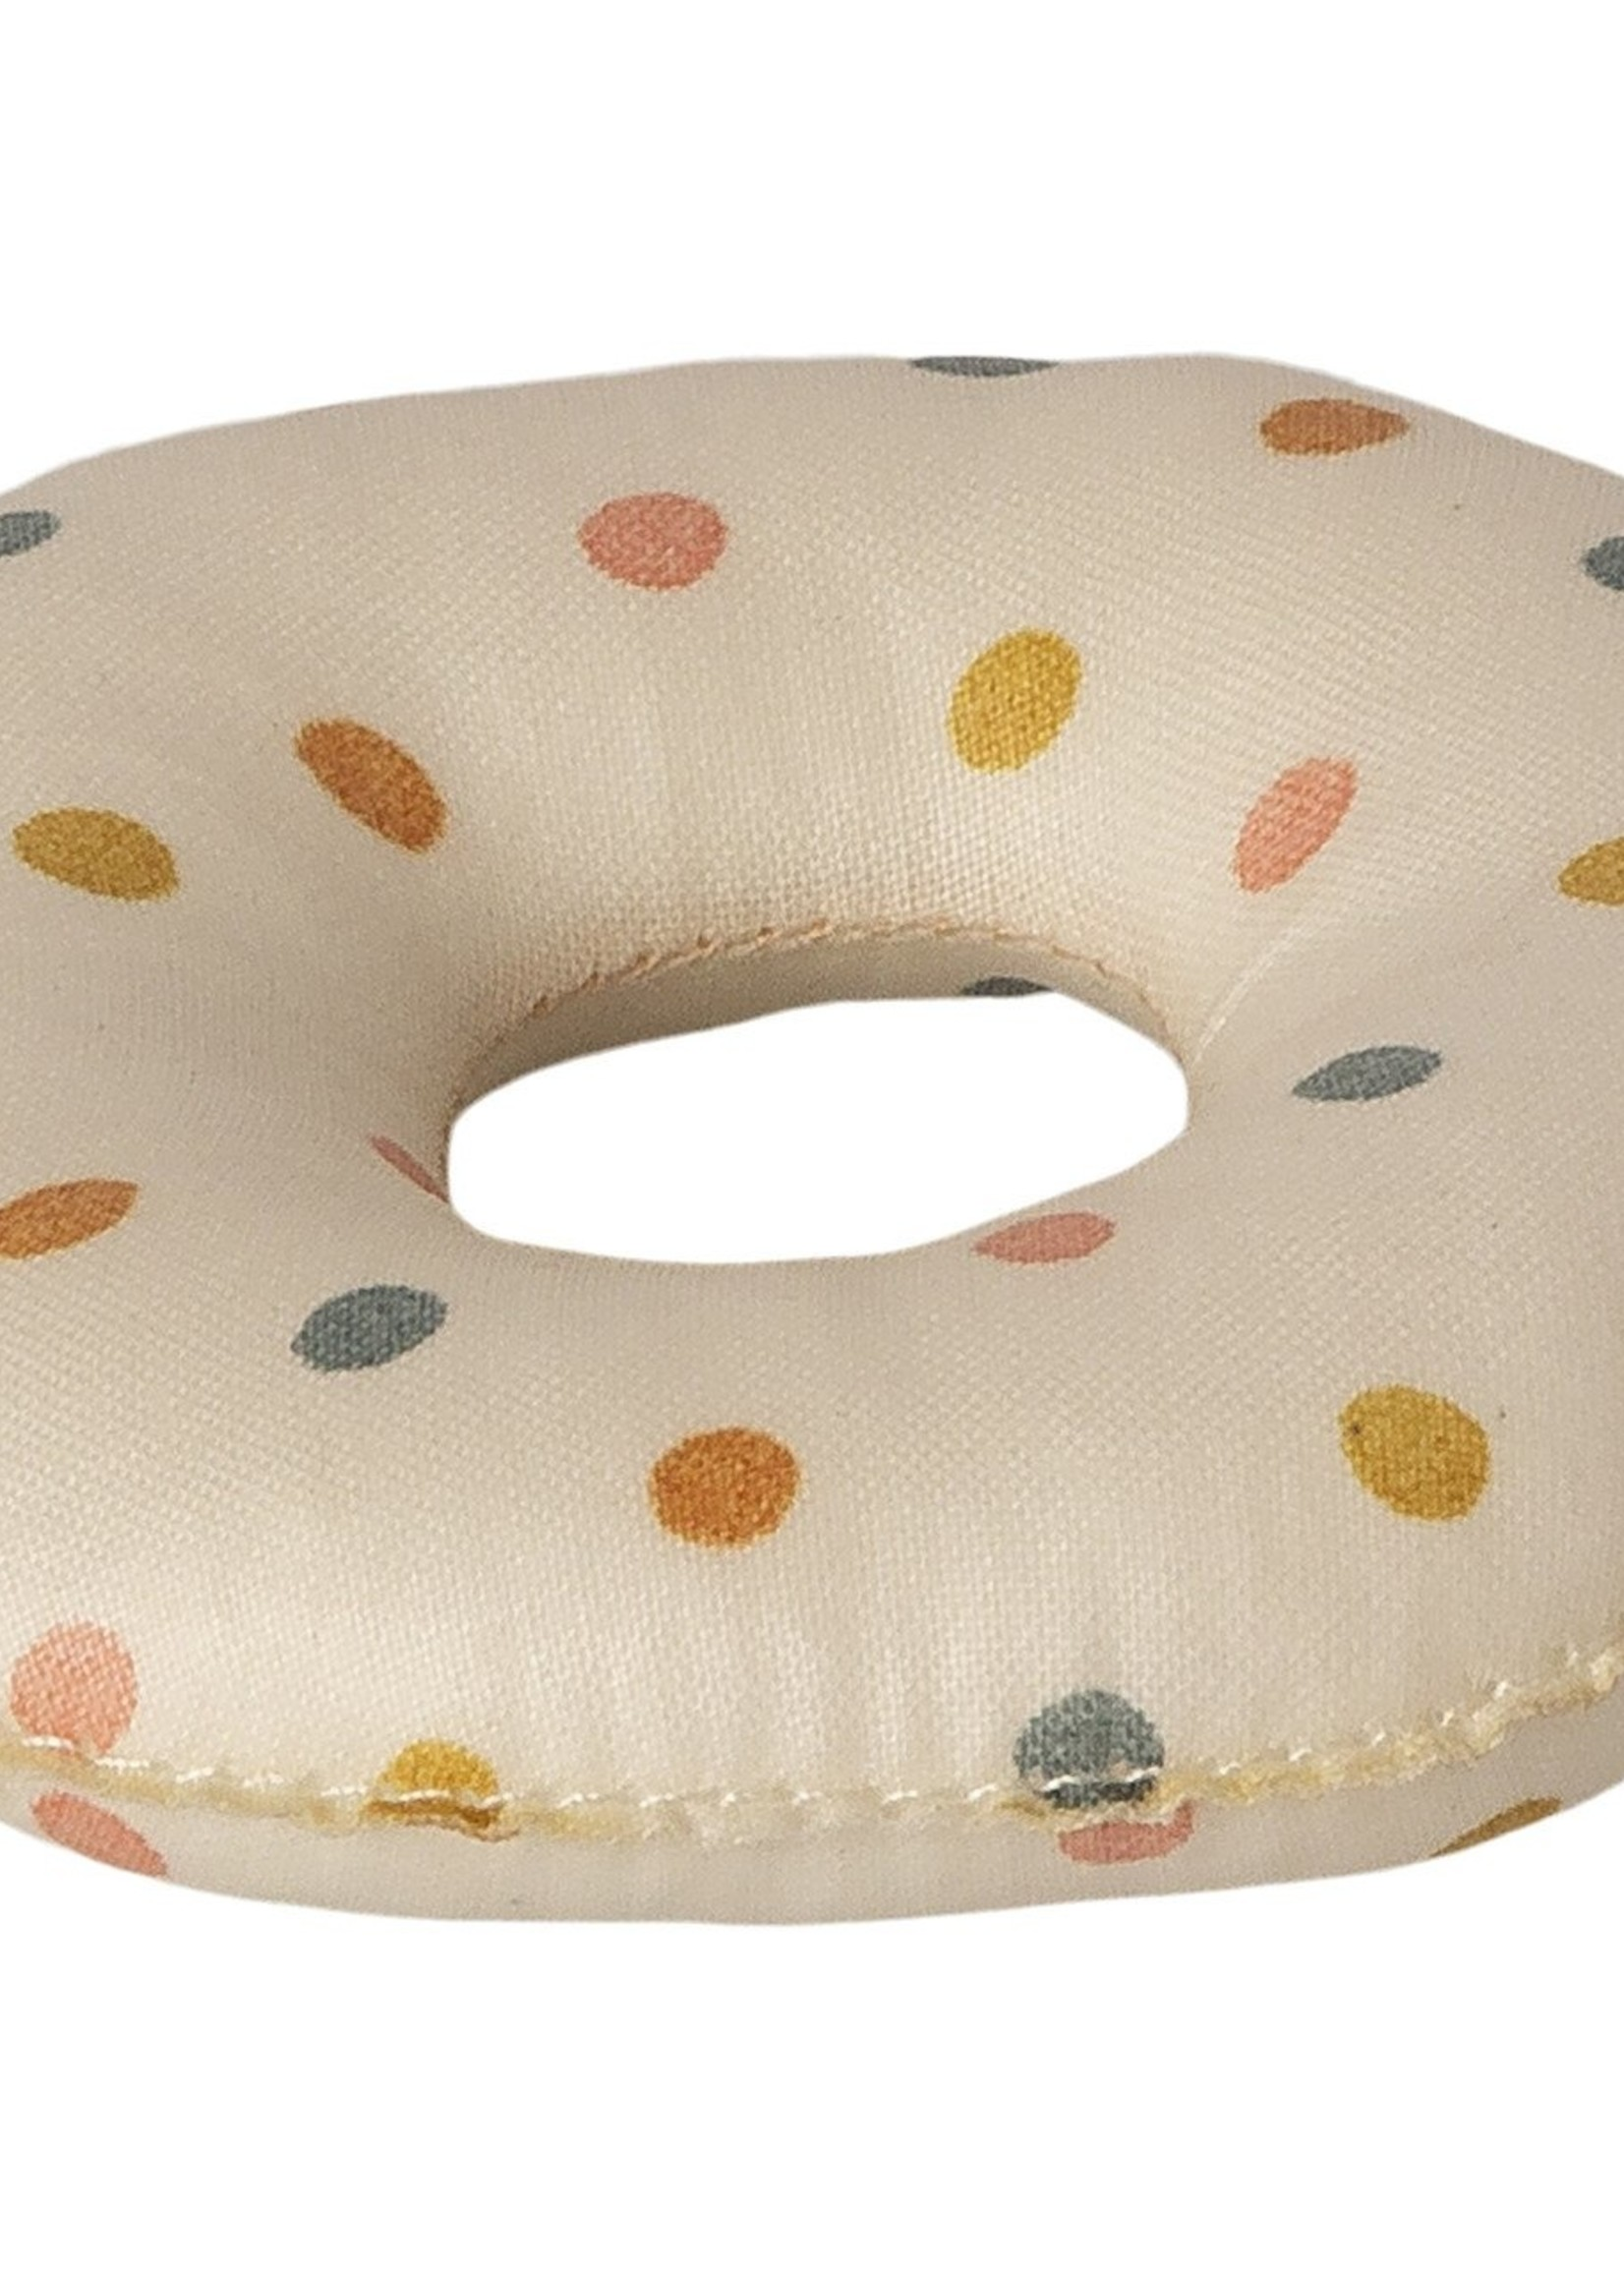 maileg Float, small mouse- Multi dot